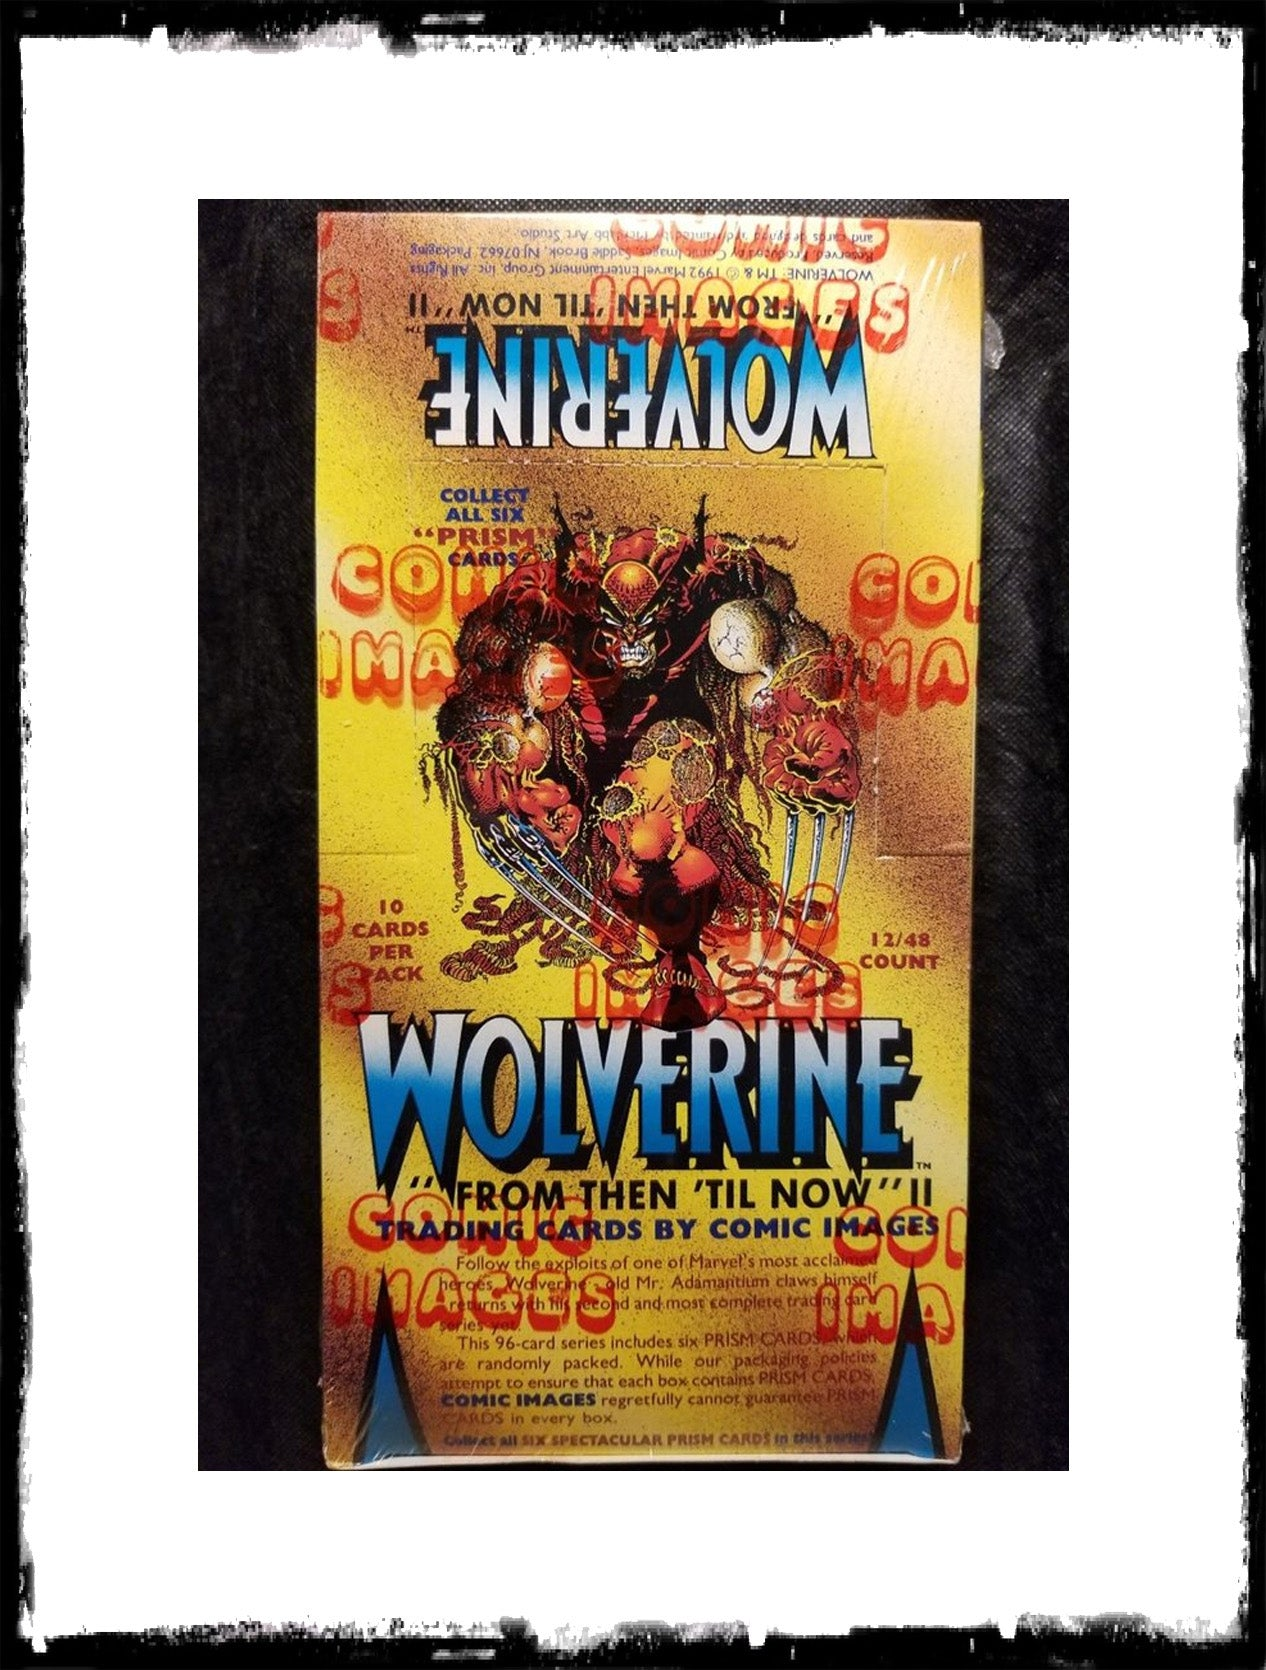 "WOLVERINE: ""FROM THEN TILL NOW"" II - 1992 SEALED TRADING CARD BOX!"